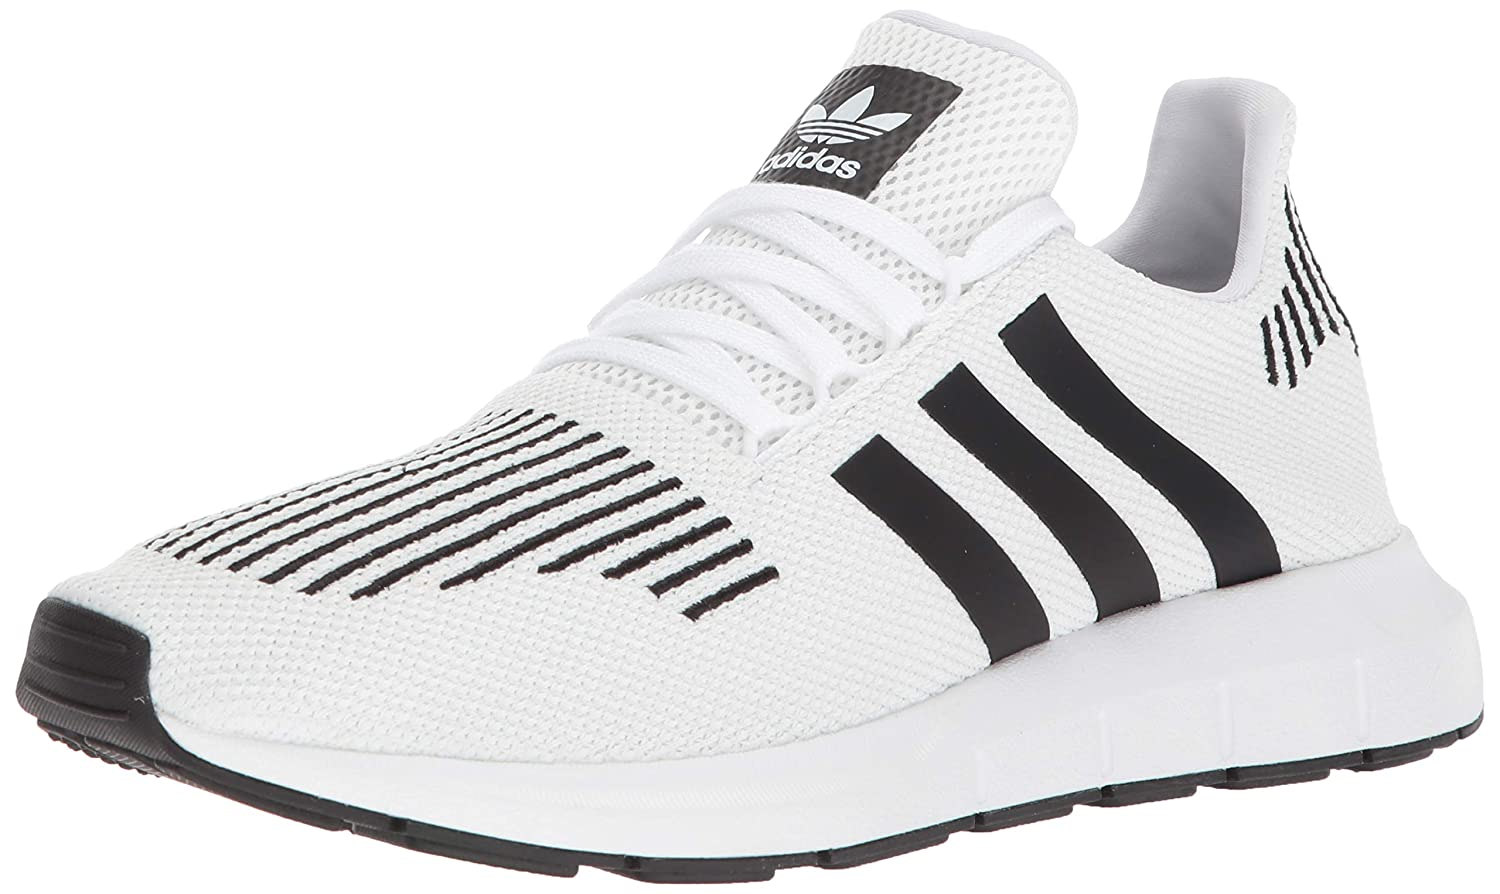 Adidas Swift Run - CQ2116 - Größe 9 -